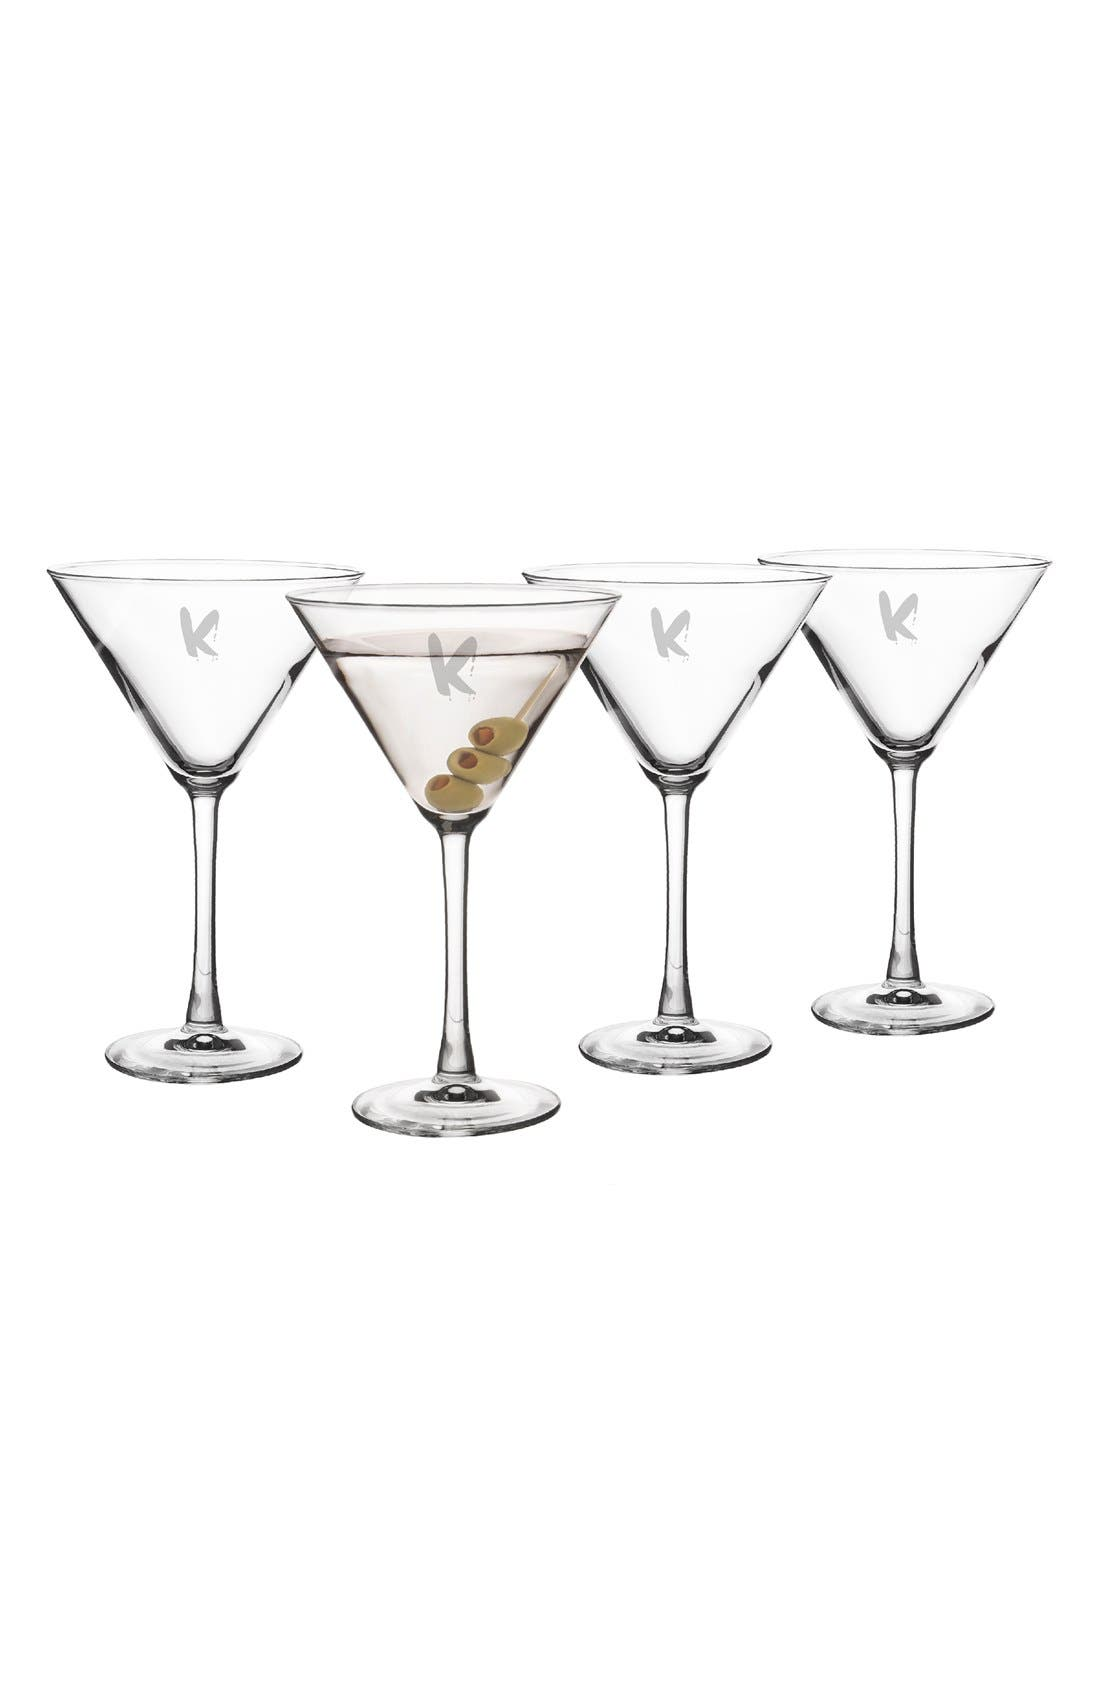 'Spooky' Monogram Martini Glasses,                             Alternate thumbnail 2, color,                             100